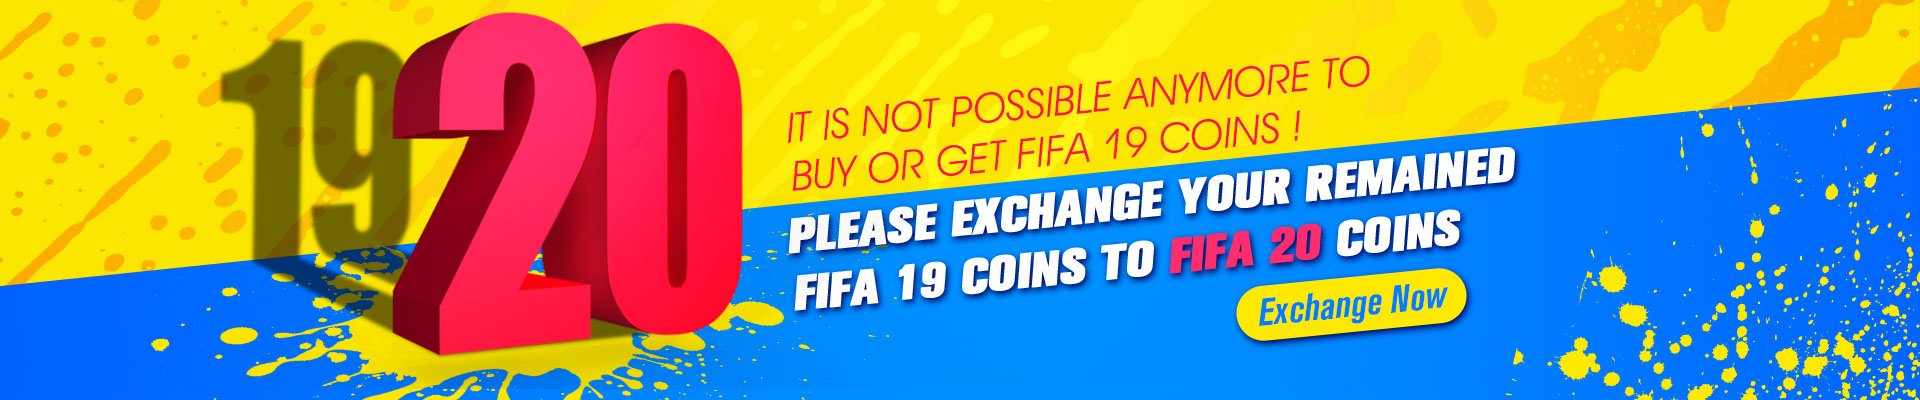 exchange fifa 20 coins